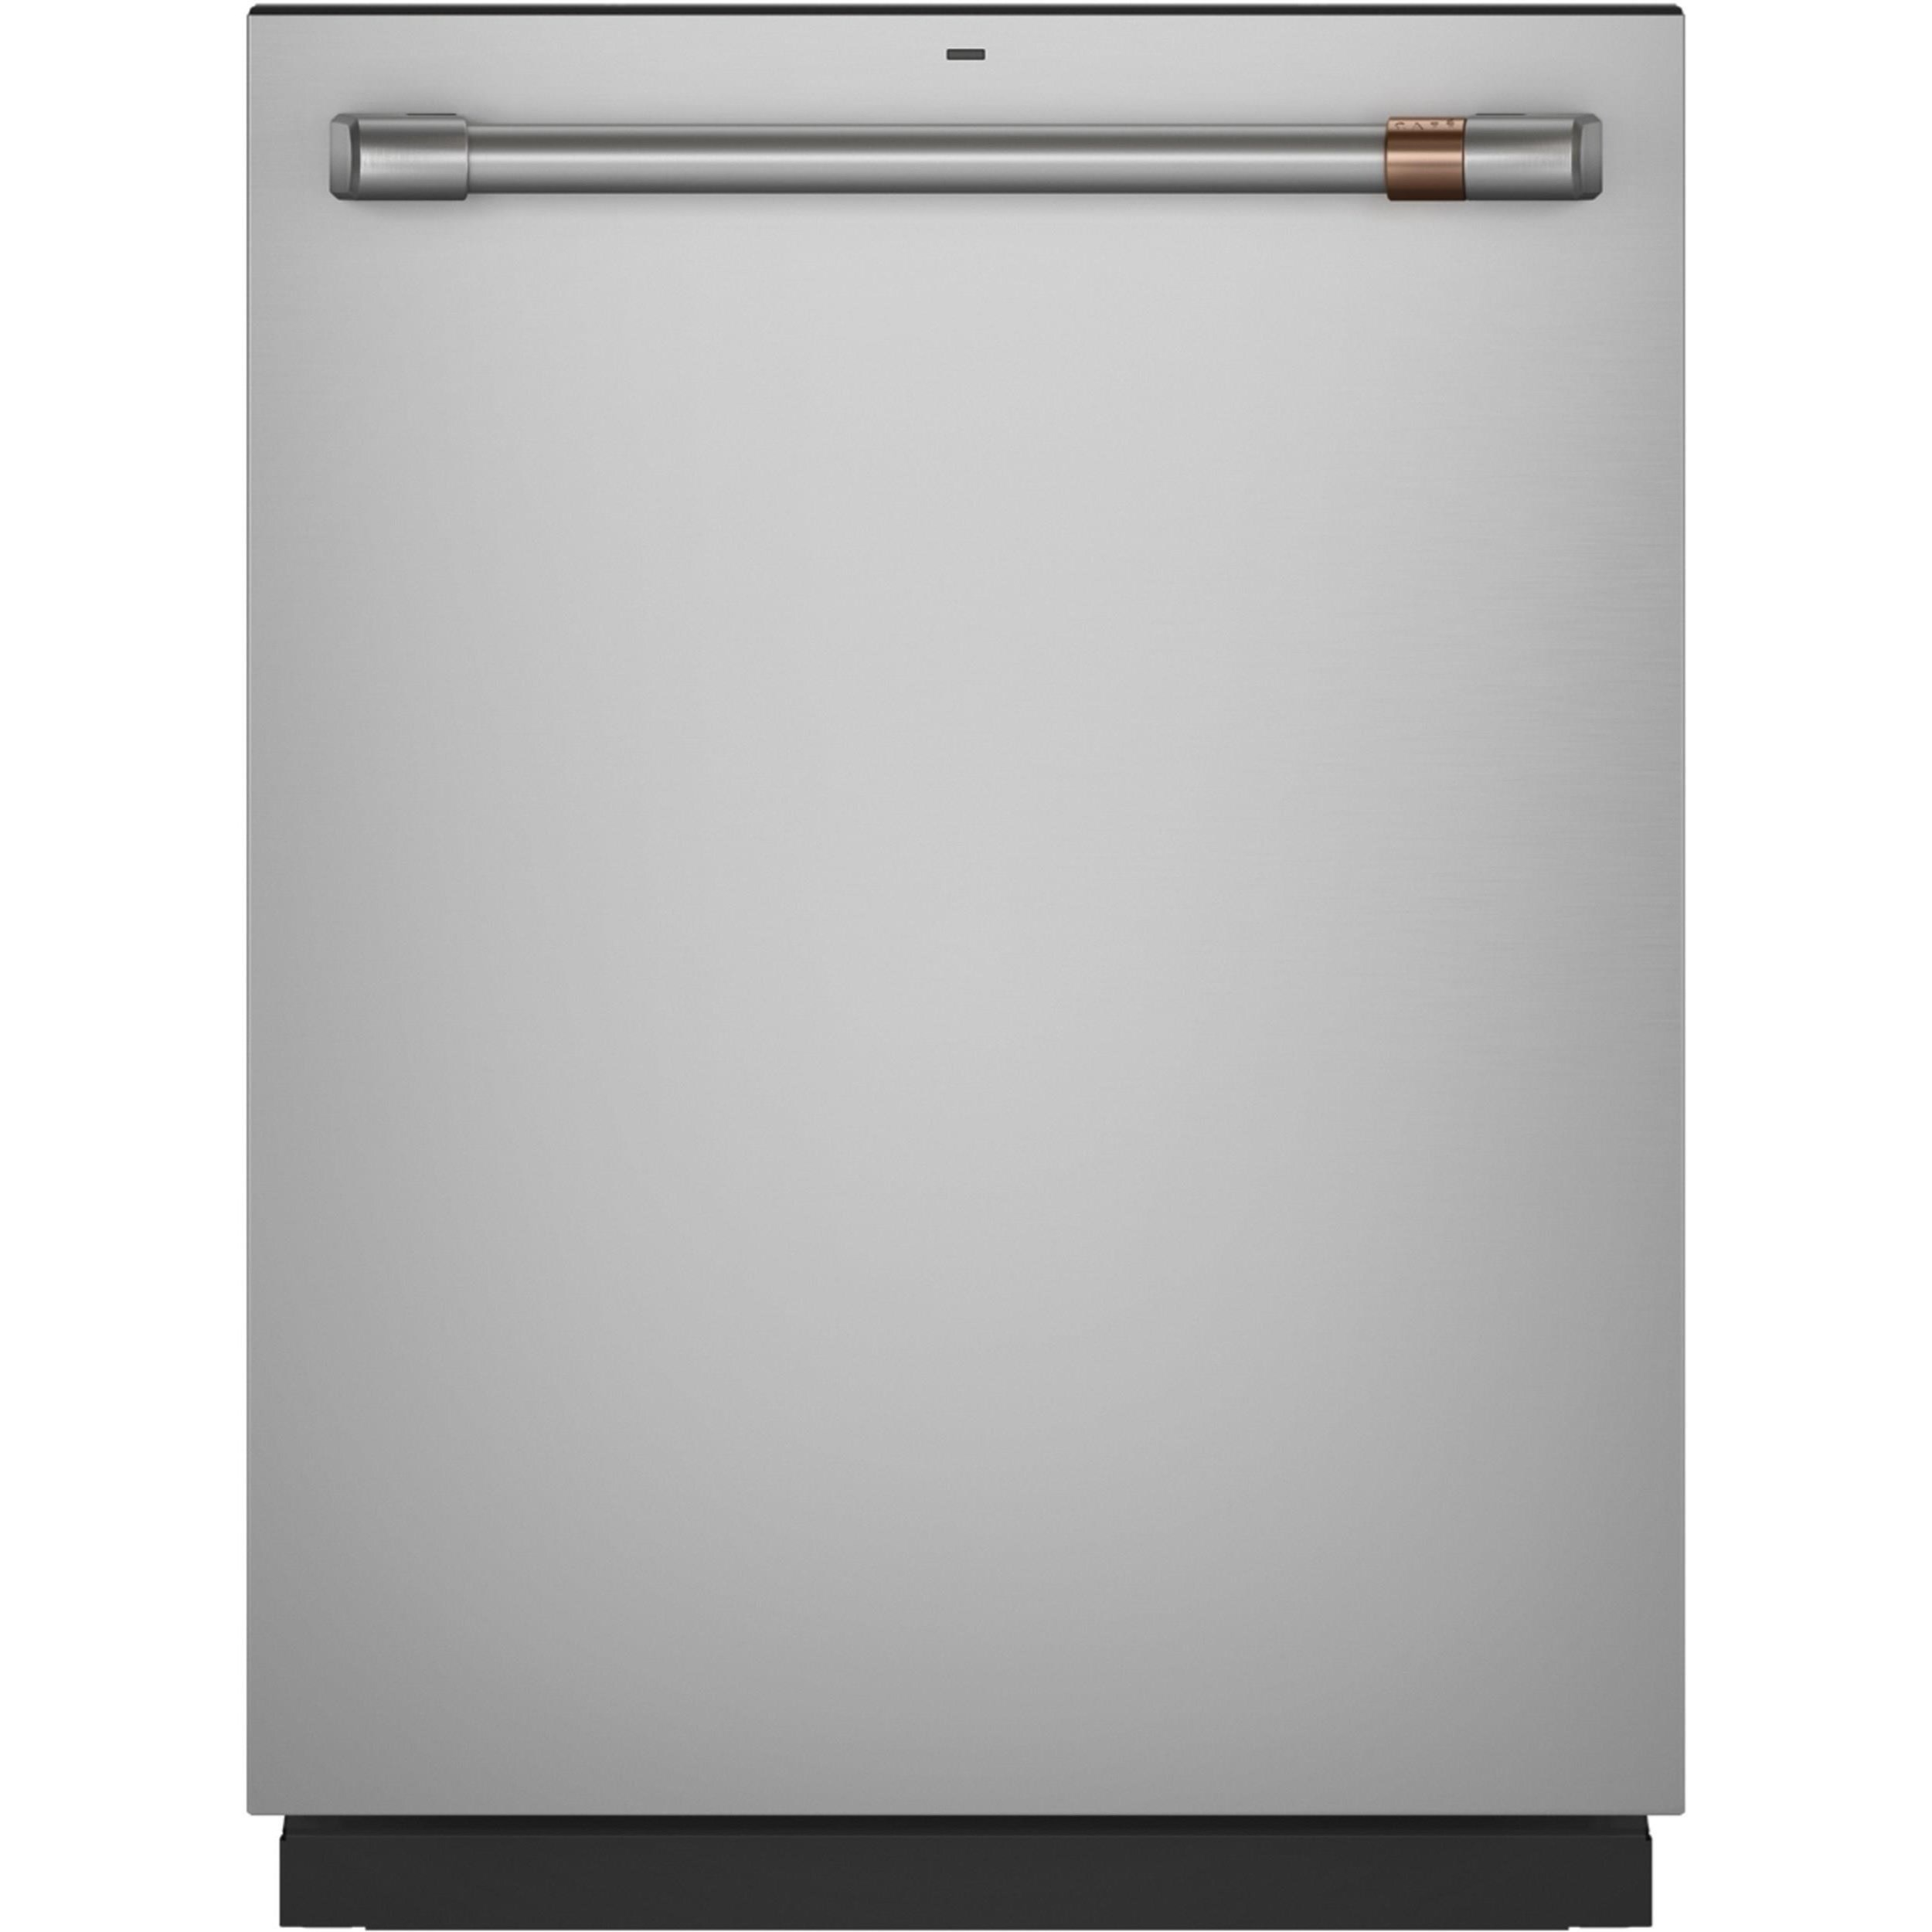 GE Cafe Dishwashers Cafe´™ Stainless Steel Interior Dishwasher by GE Appliances at Furniture and ApplianceMart